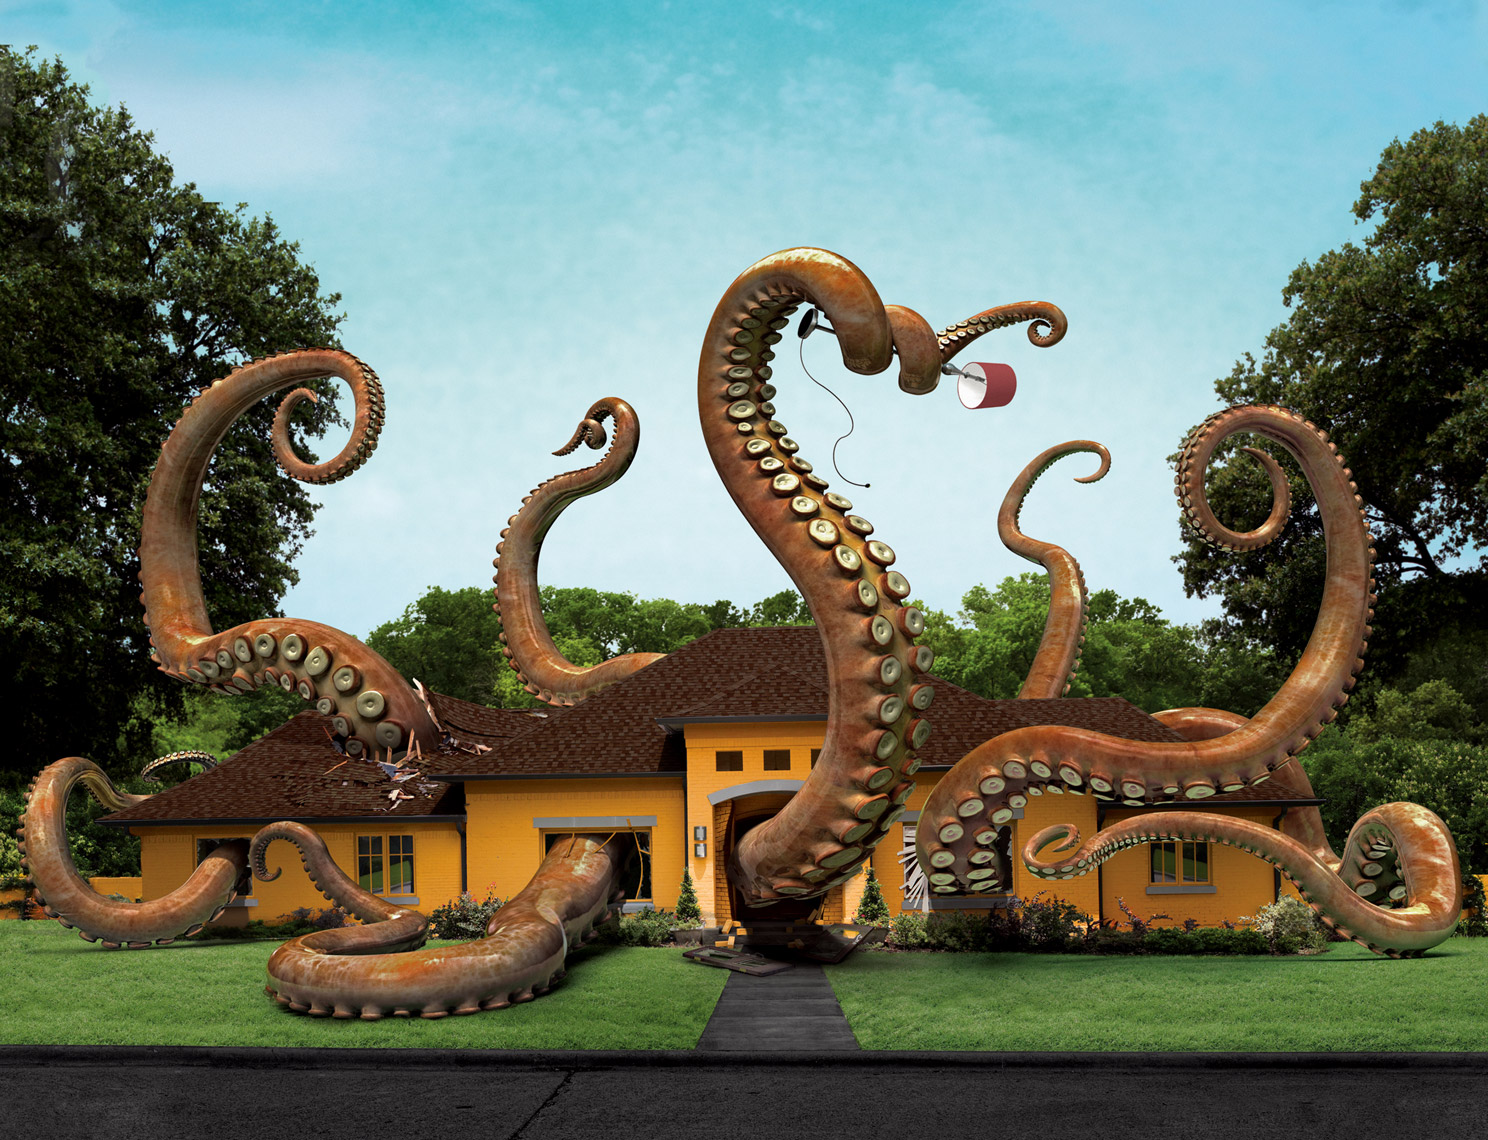 OctopusHouse_hrcrop